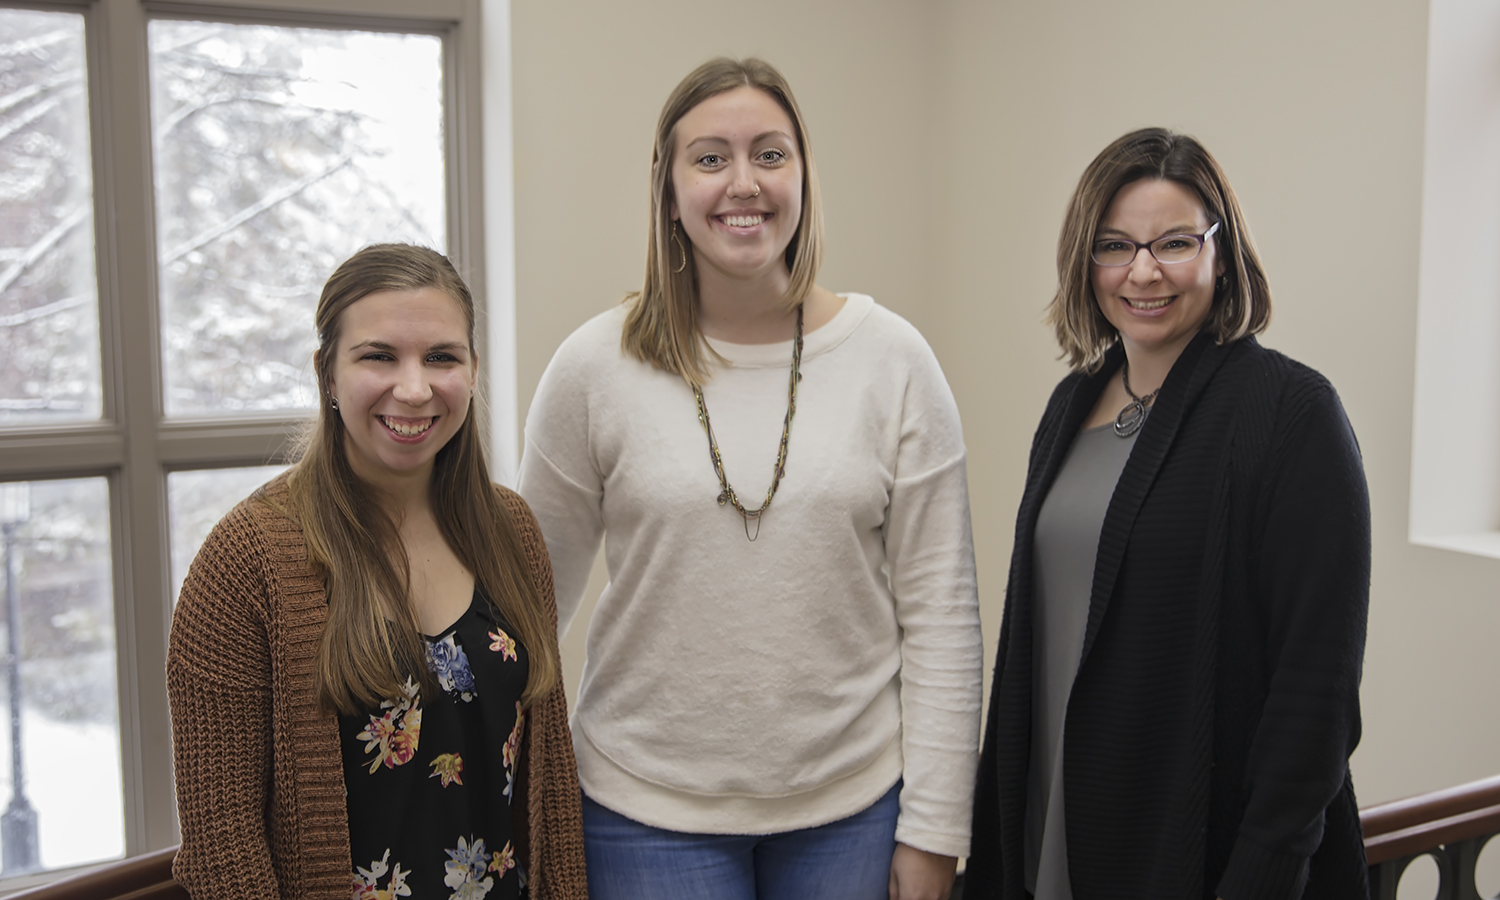 Elizabeth Hawes '19, Kelsey Arroyo '18 and Associate Professor of Psychology Jamie Bodenlos gather for a photo in Gulick Hall. Led by Bodenlos, Arroyo and Hawes will be presenting their research on  the role of cognitive fusion on the health of college students at the at the annual conference of the Society of Behavioral Medicine in April.